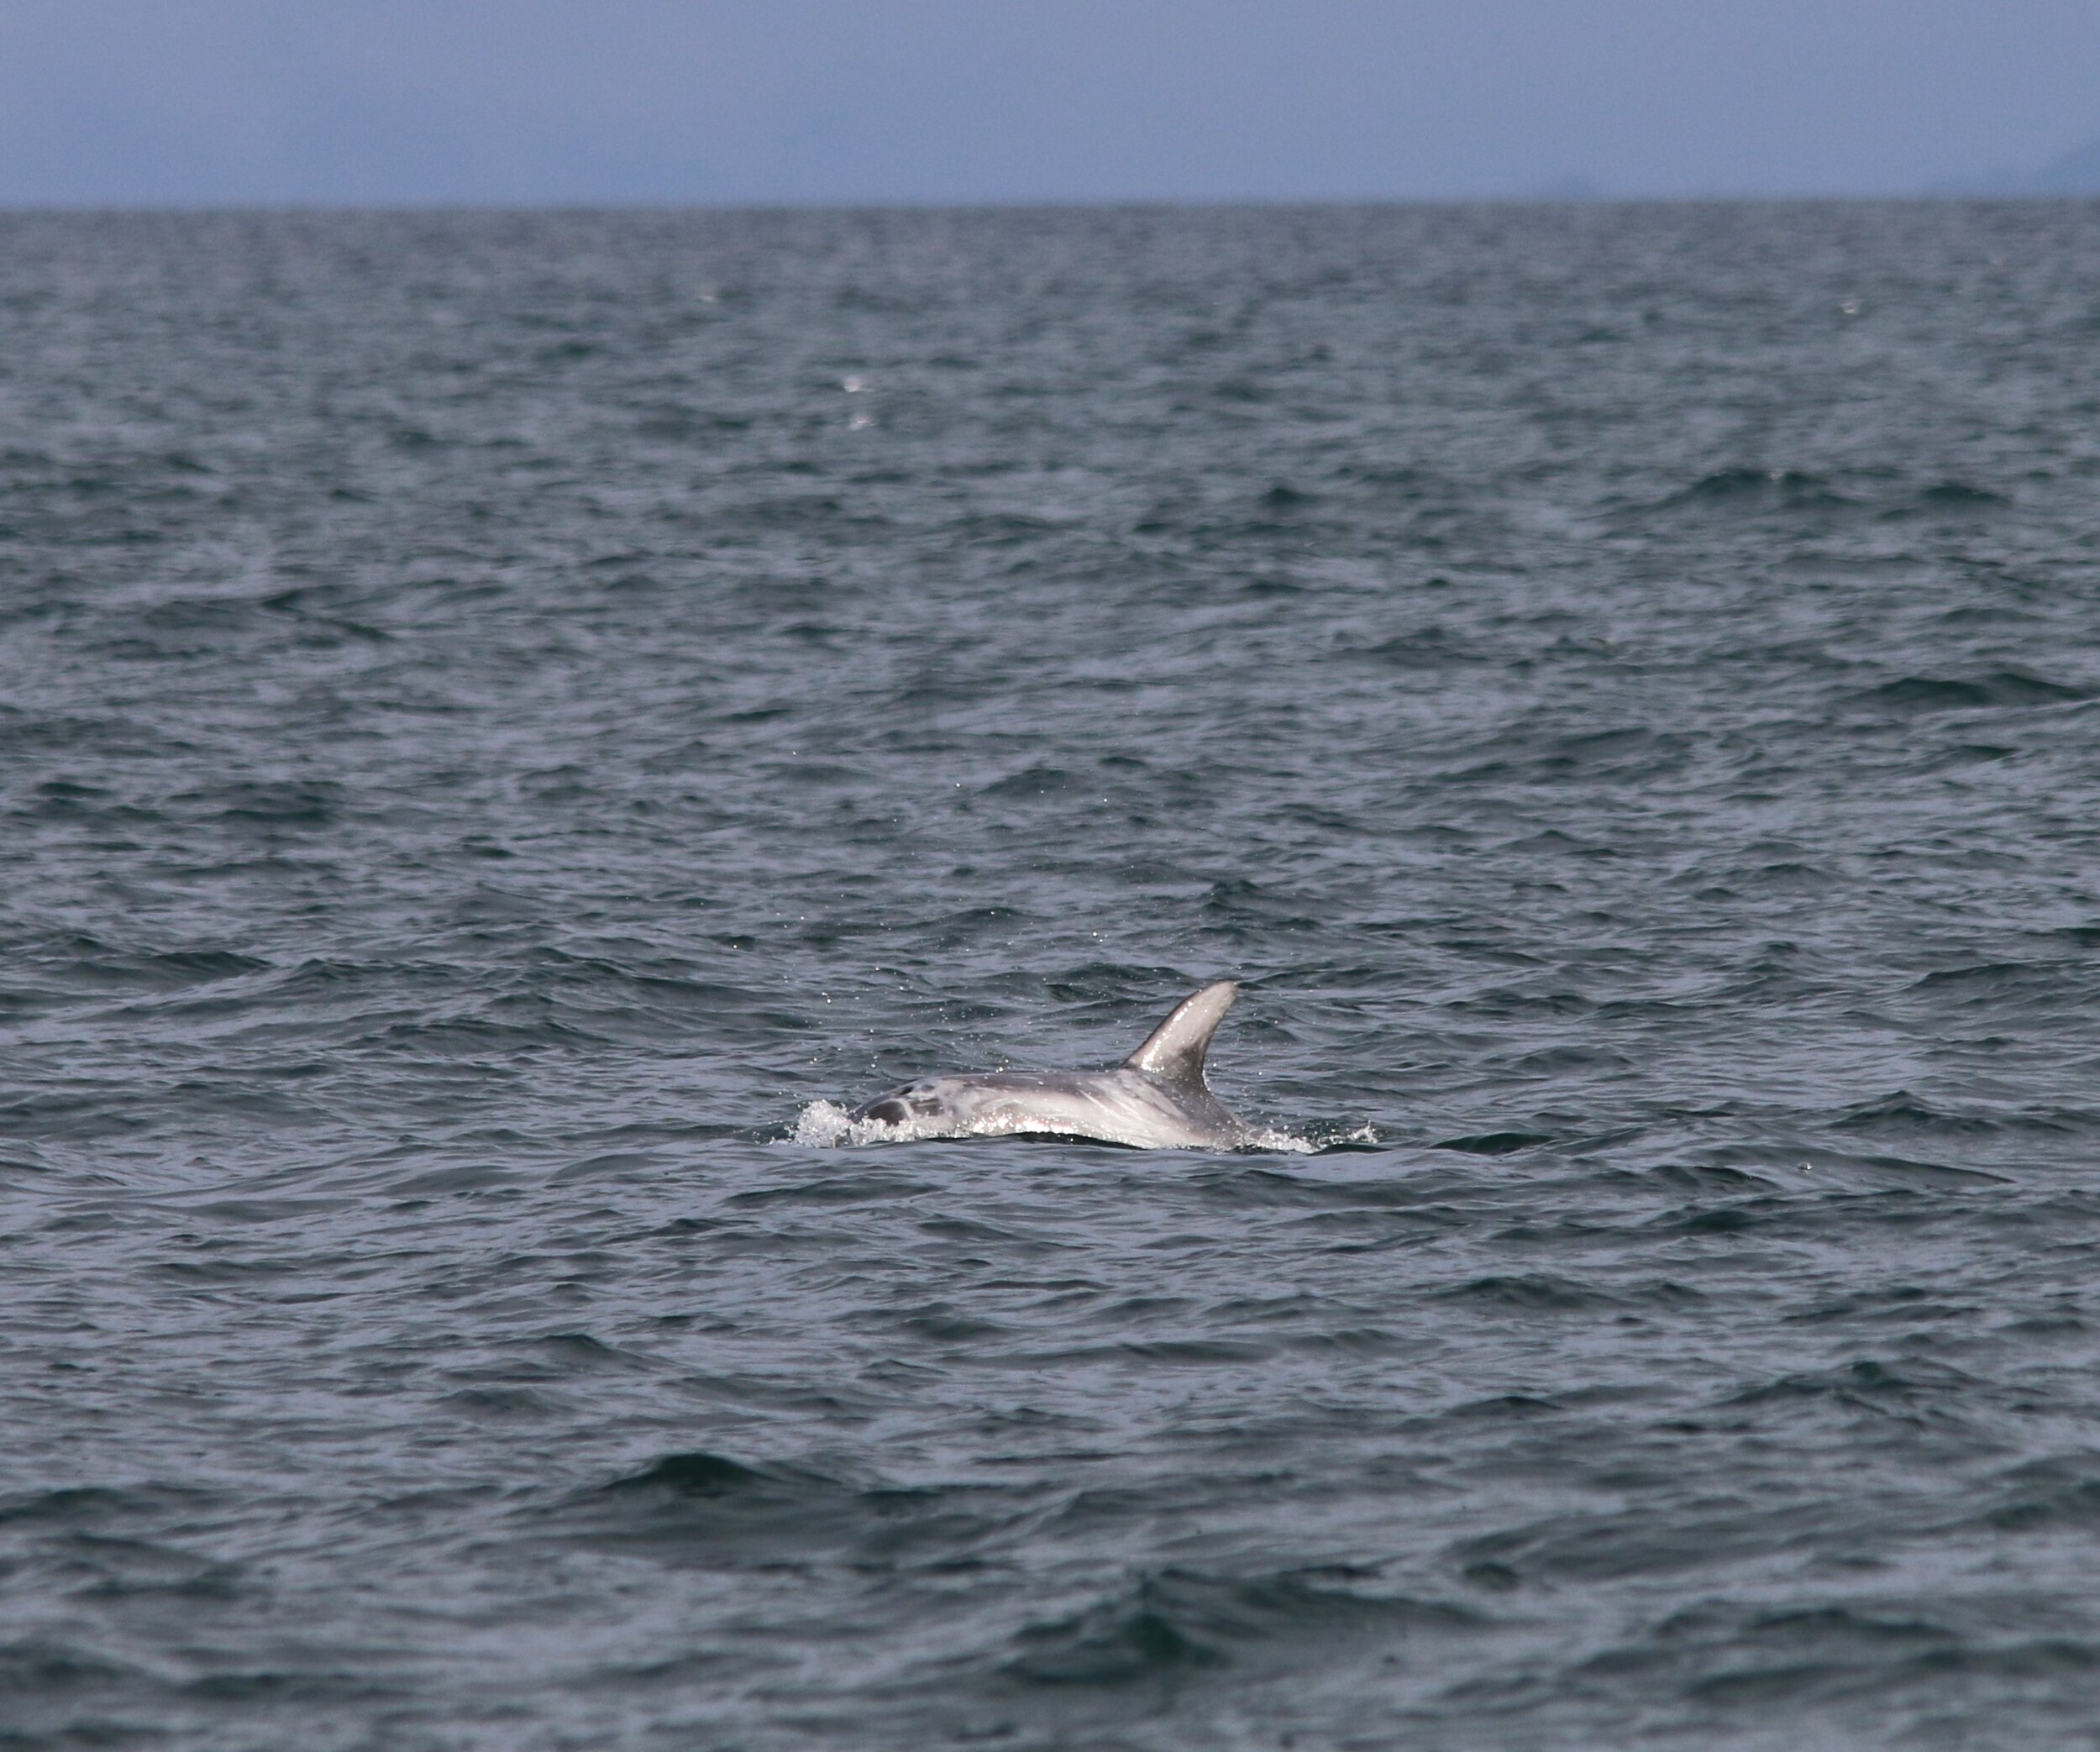 Risso's dolphin encountered at the Shiant Islands